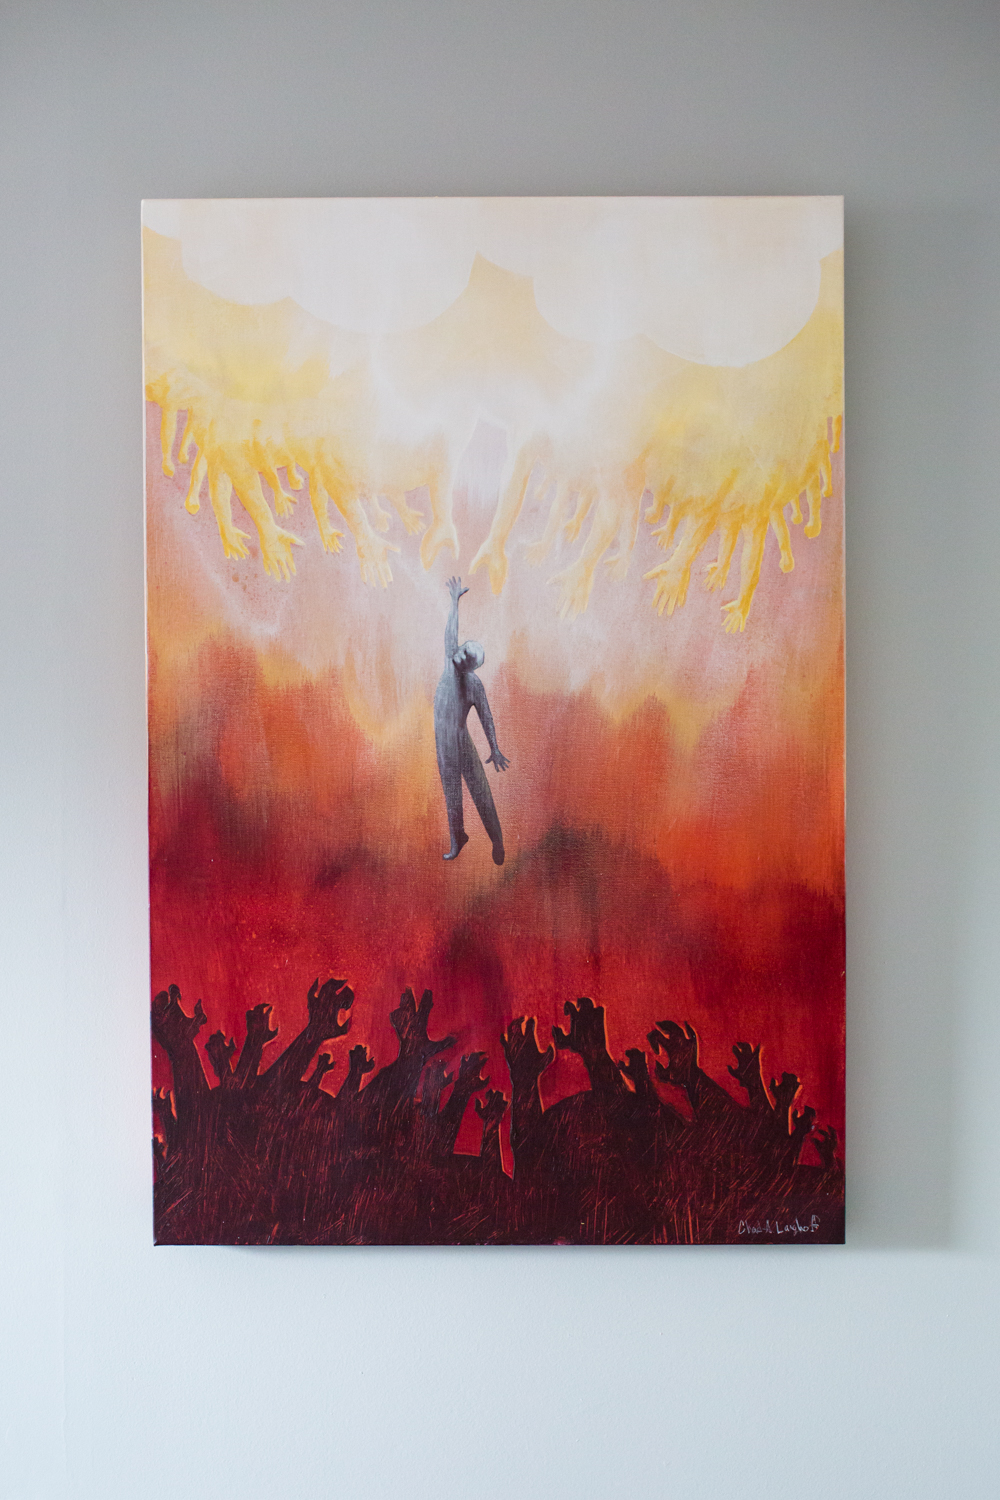 HopeDelivered-ChadLanghoff-Painting-ModernBibleArt-MinimalistPainting-BibleStory-MinimalistArt-CustomPaintings-TheDailyDecision-1-photo.jpg